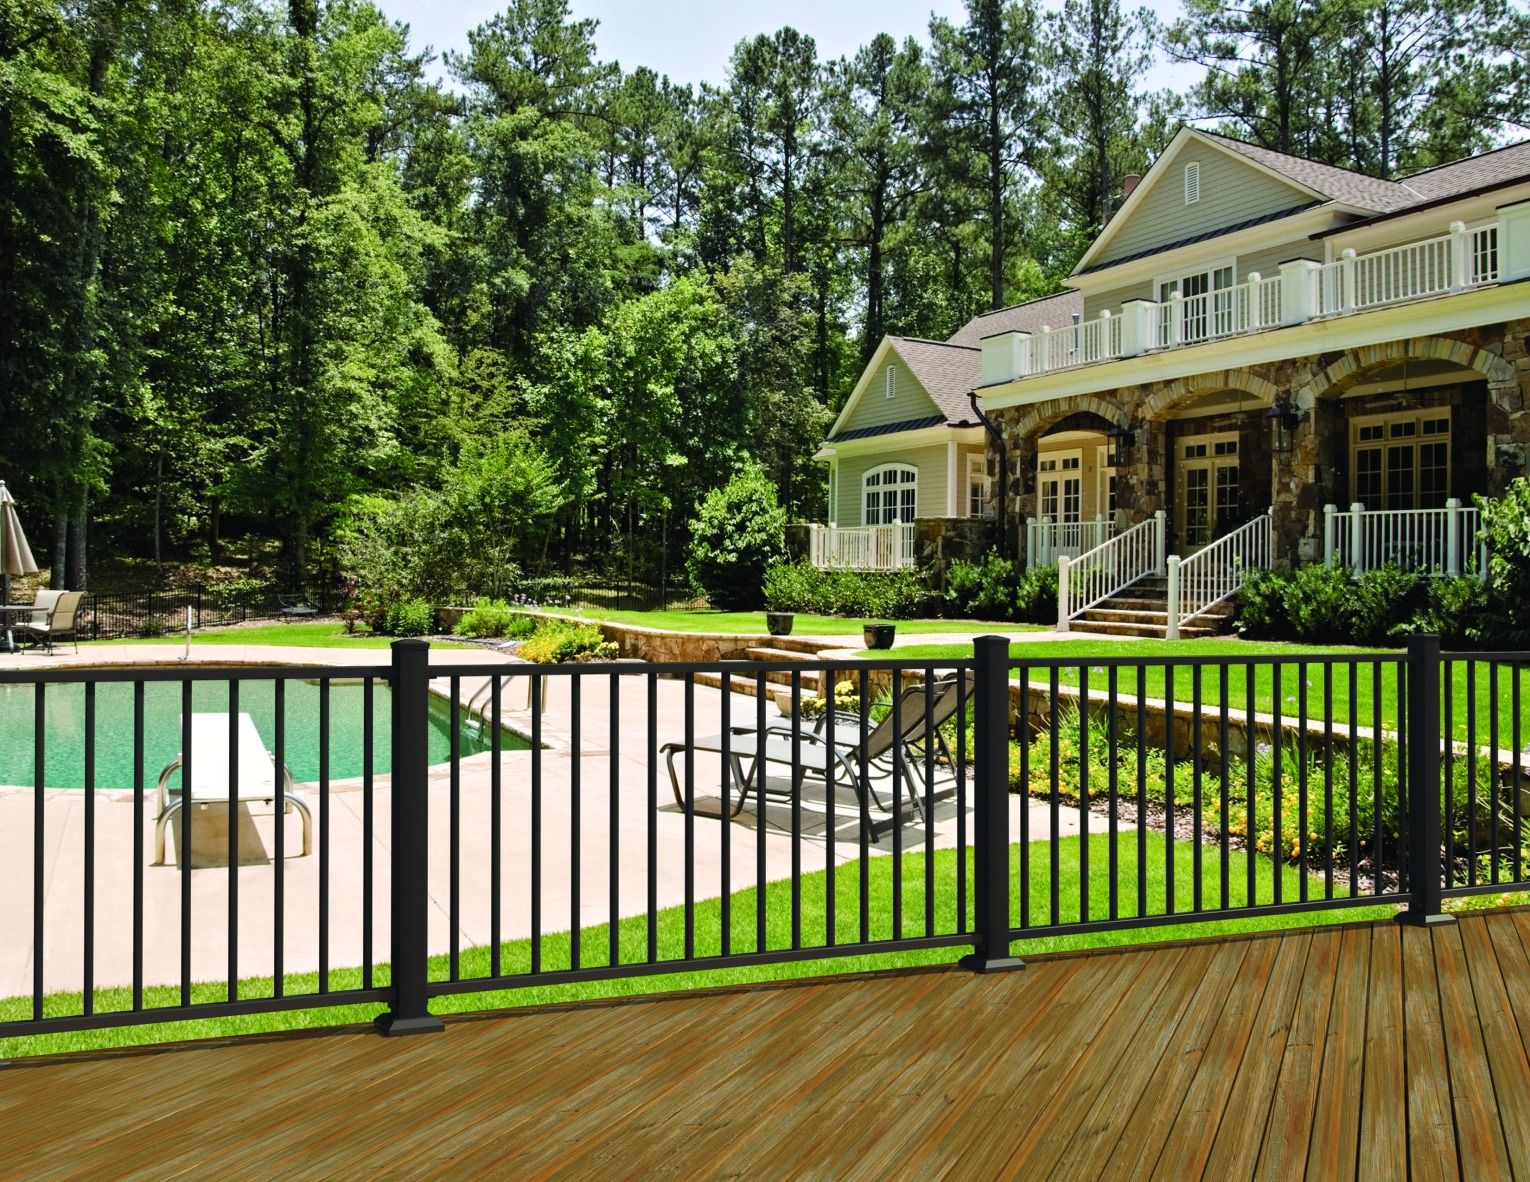 For a sleek yet modern look, enhance your landscape with